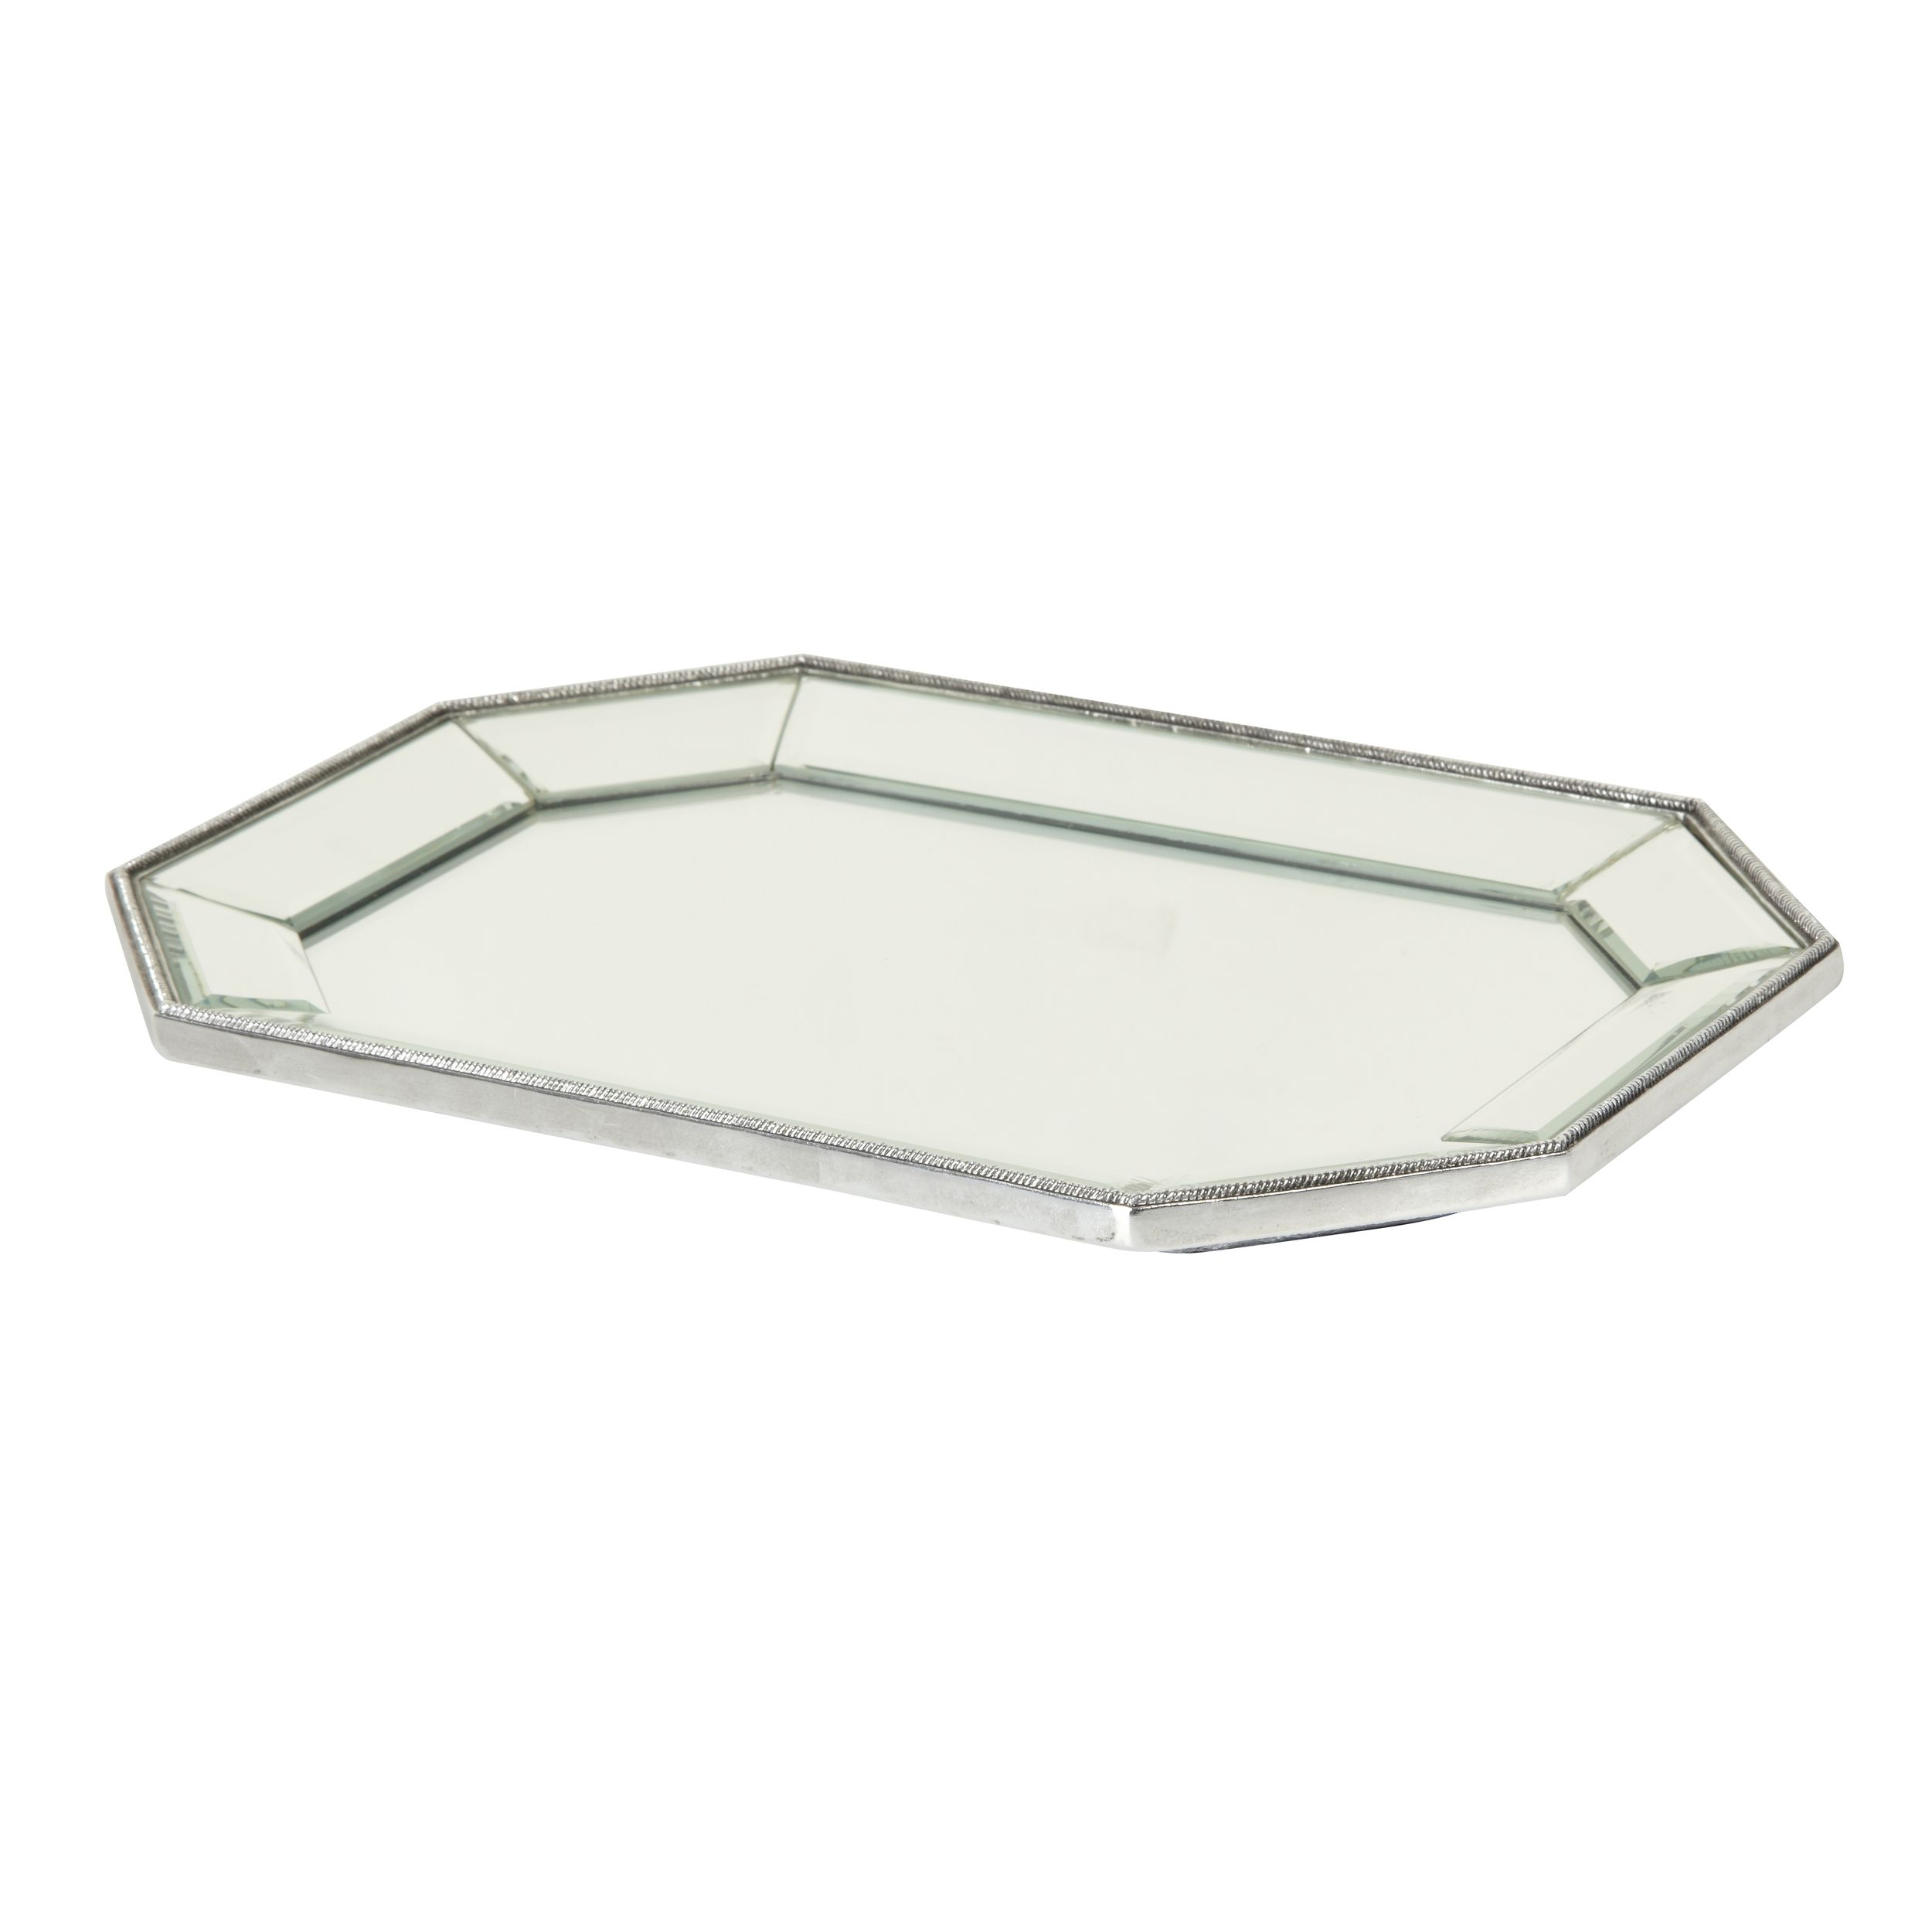 Decorative Mirror Tray Glamorous Decorative Beaded Edge Mirror Tray At Laura Ashley  Interiors Design Decoration